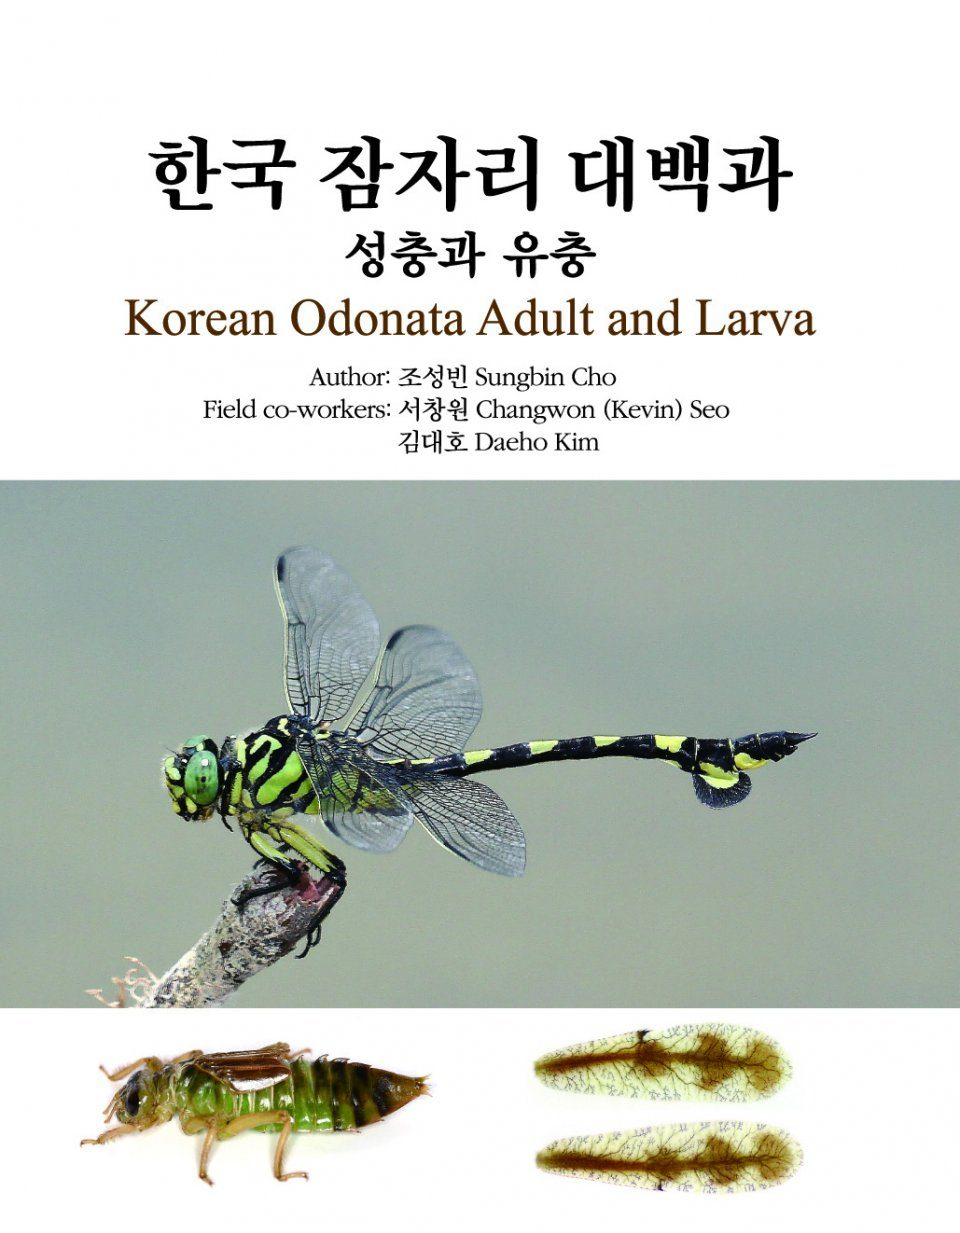 Korean Odonata Adult and Larva